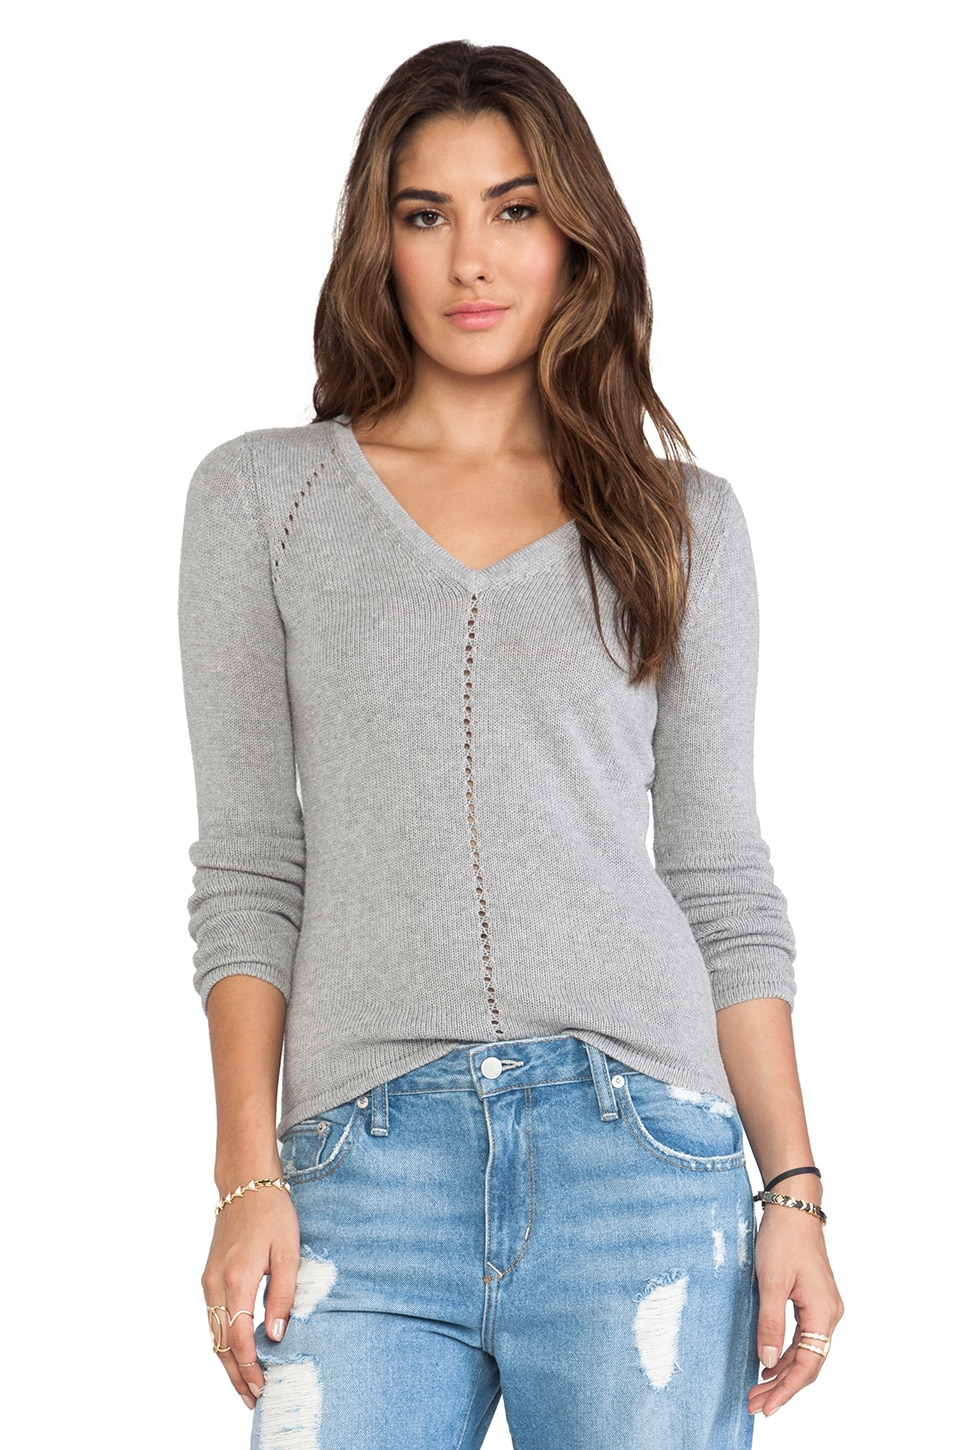 Autumn Cashmere V Neck Zig Zag Back Sweater in Sweatshirt